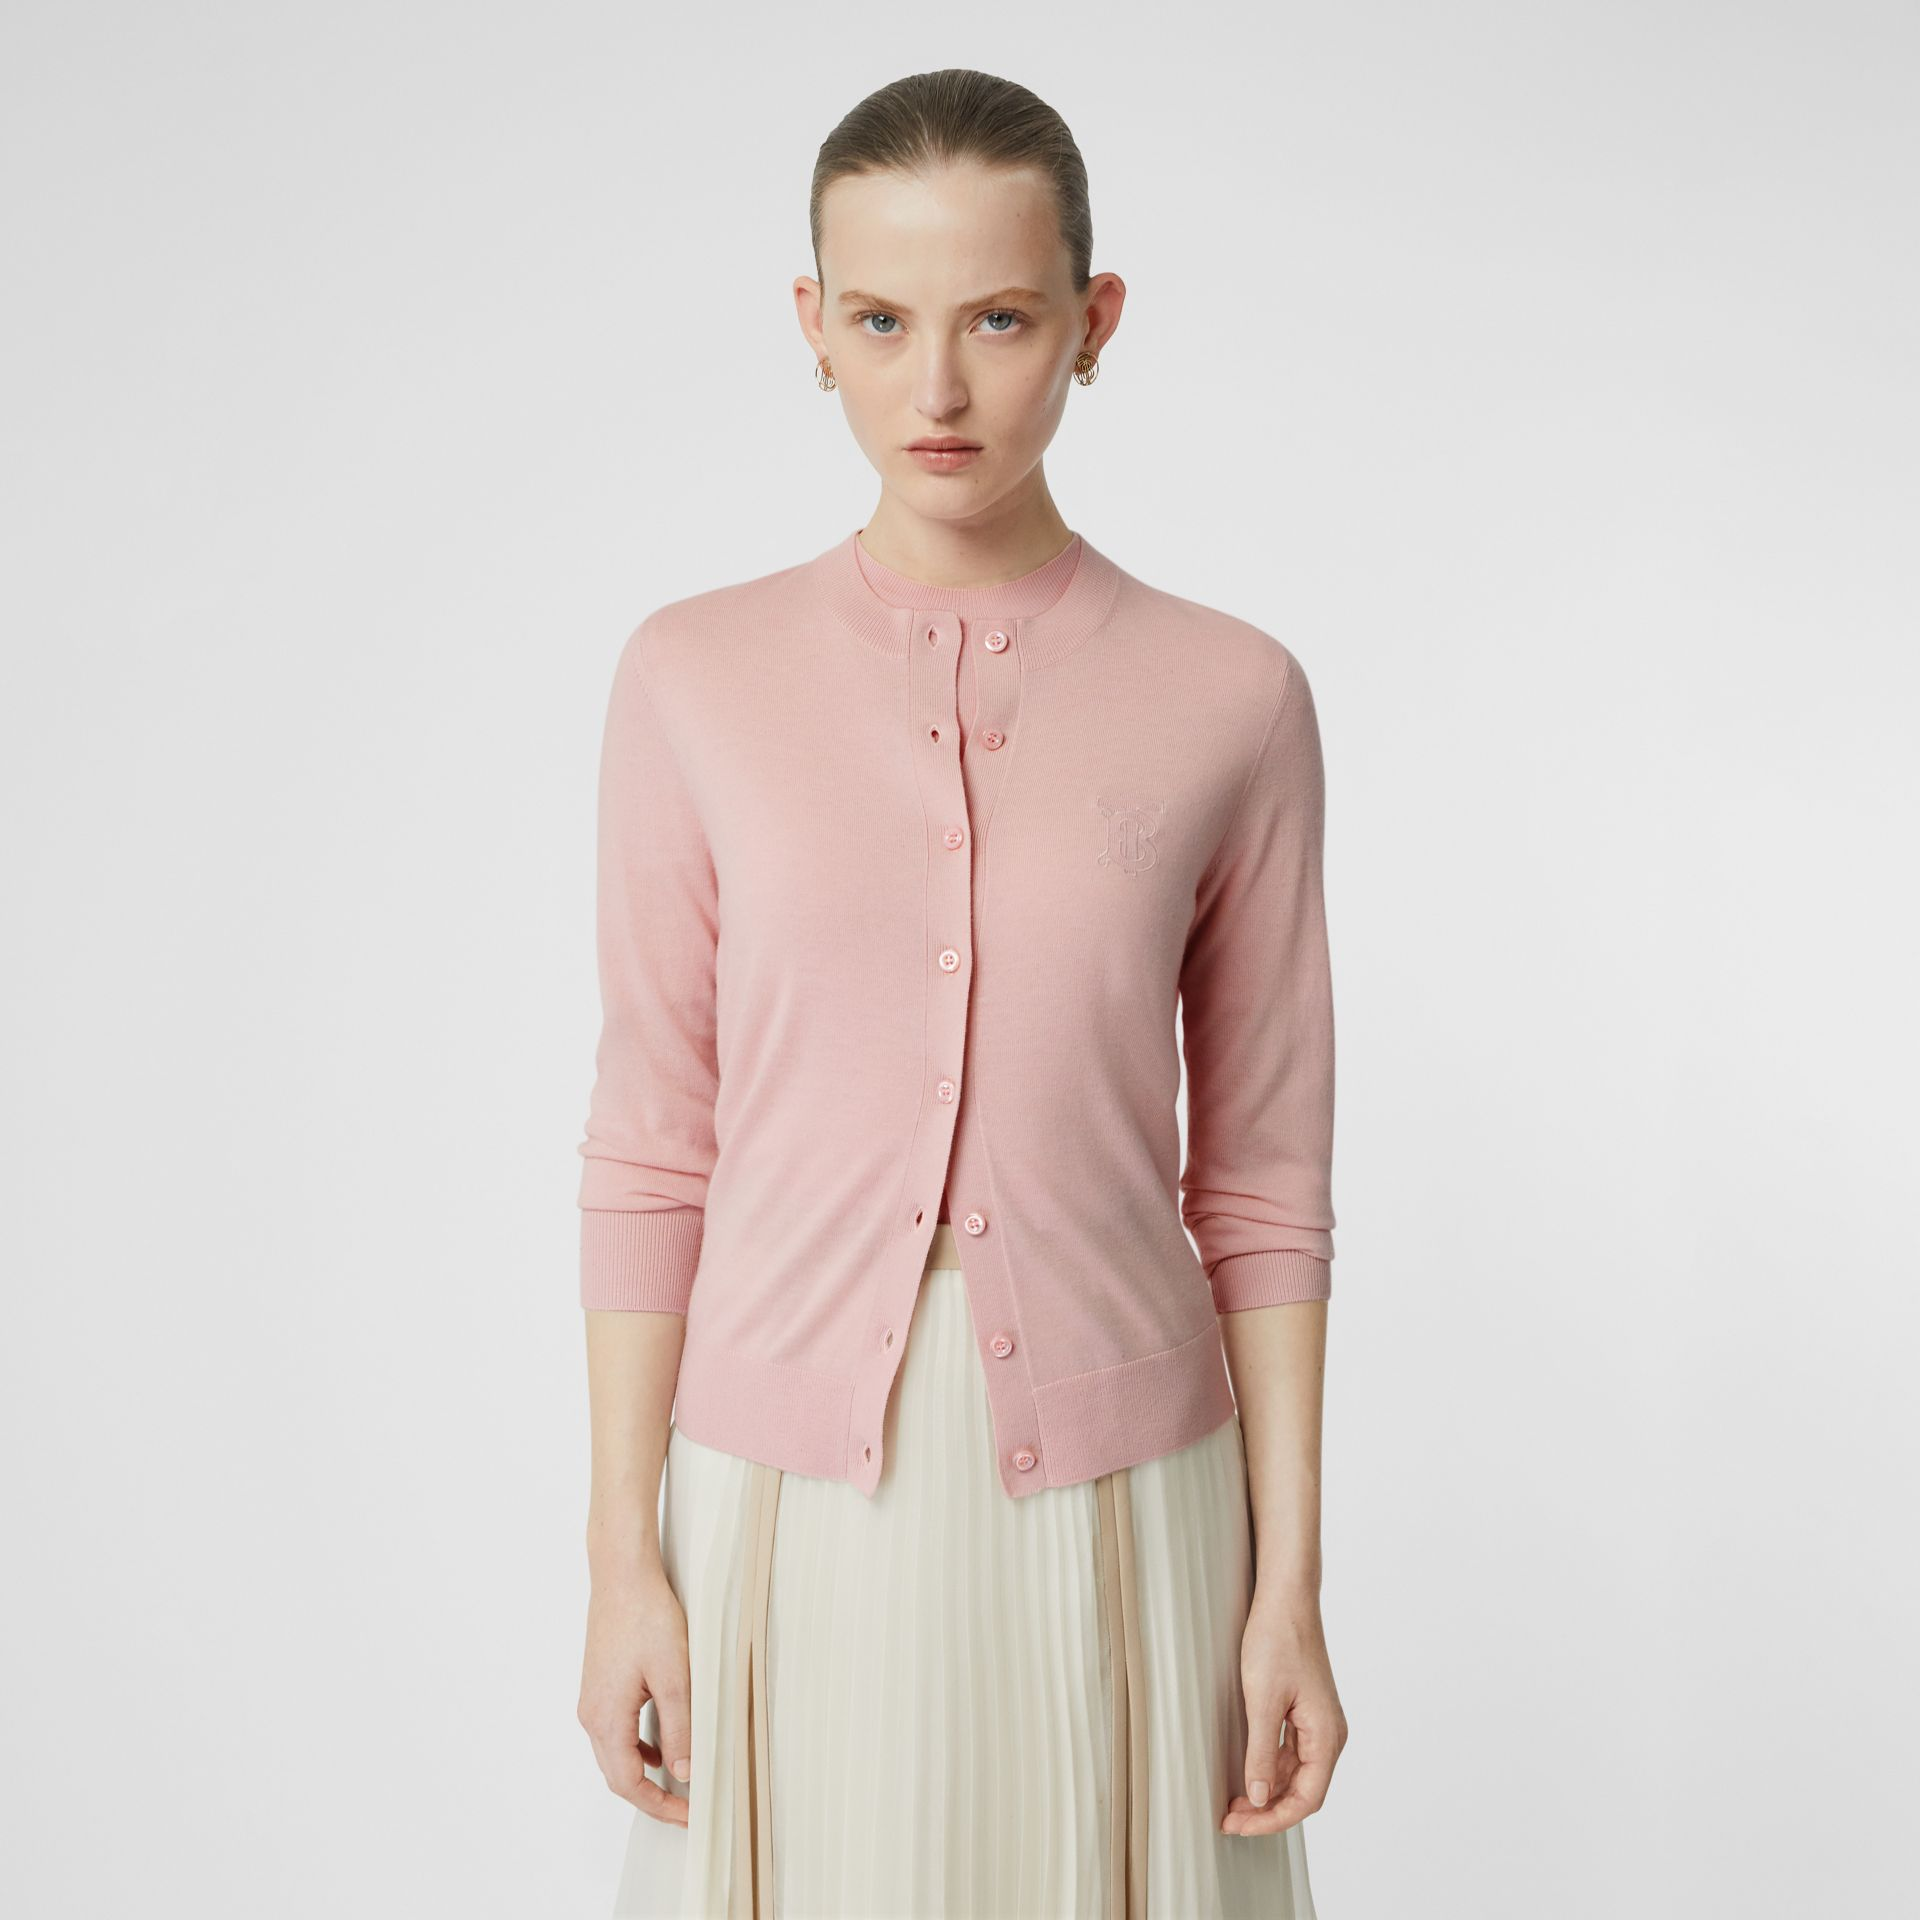 Monogram Motif Cashmere Cardigan in Pink - Women | Burberry - gallery image 3